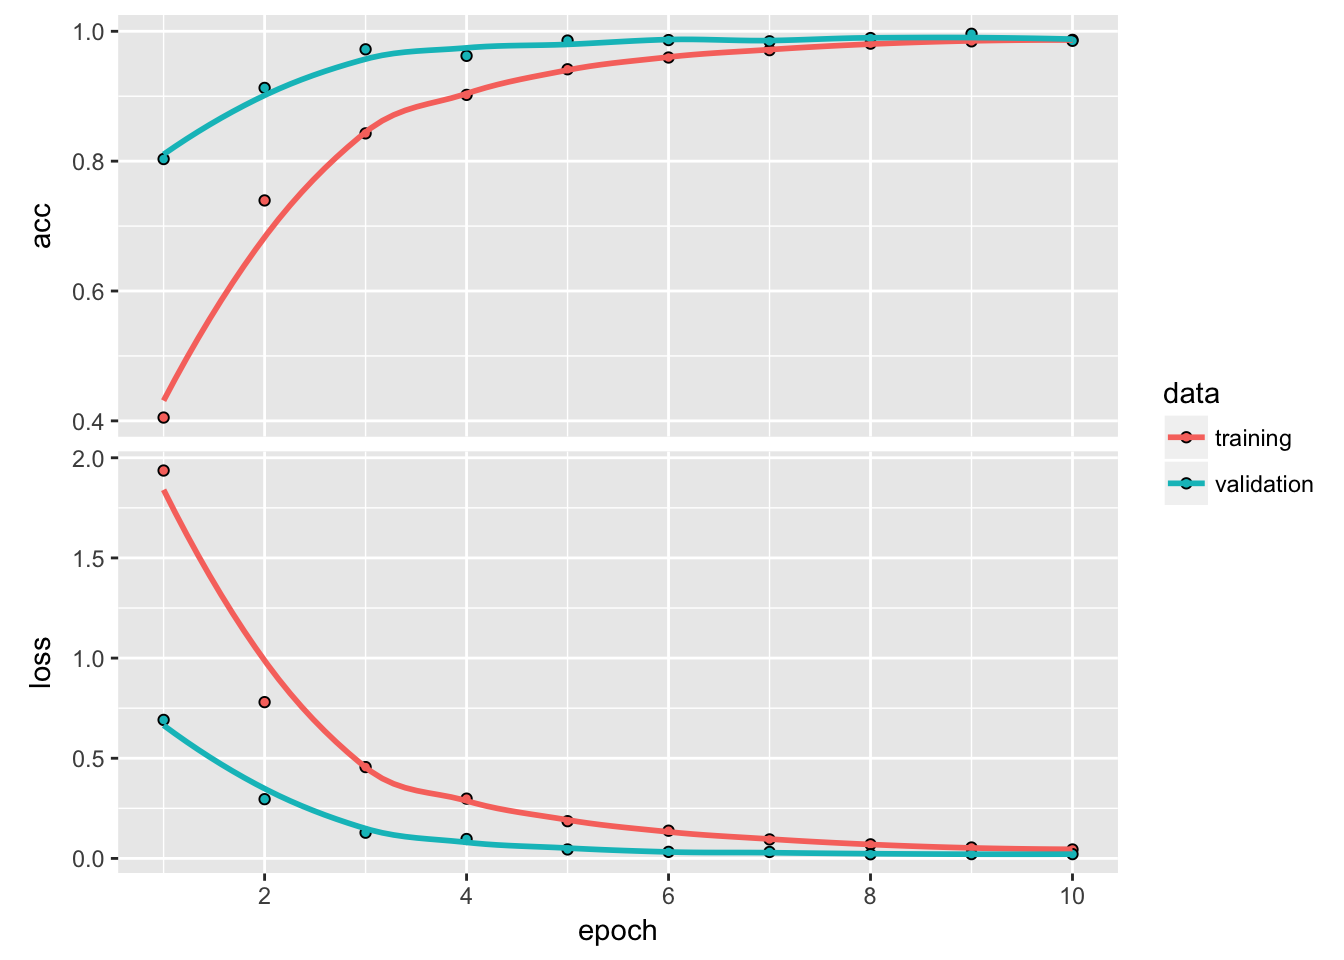 It's that easy! Image classification with keras in roughly